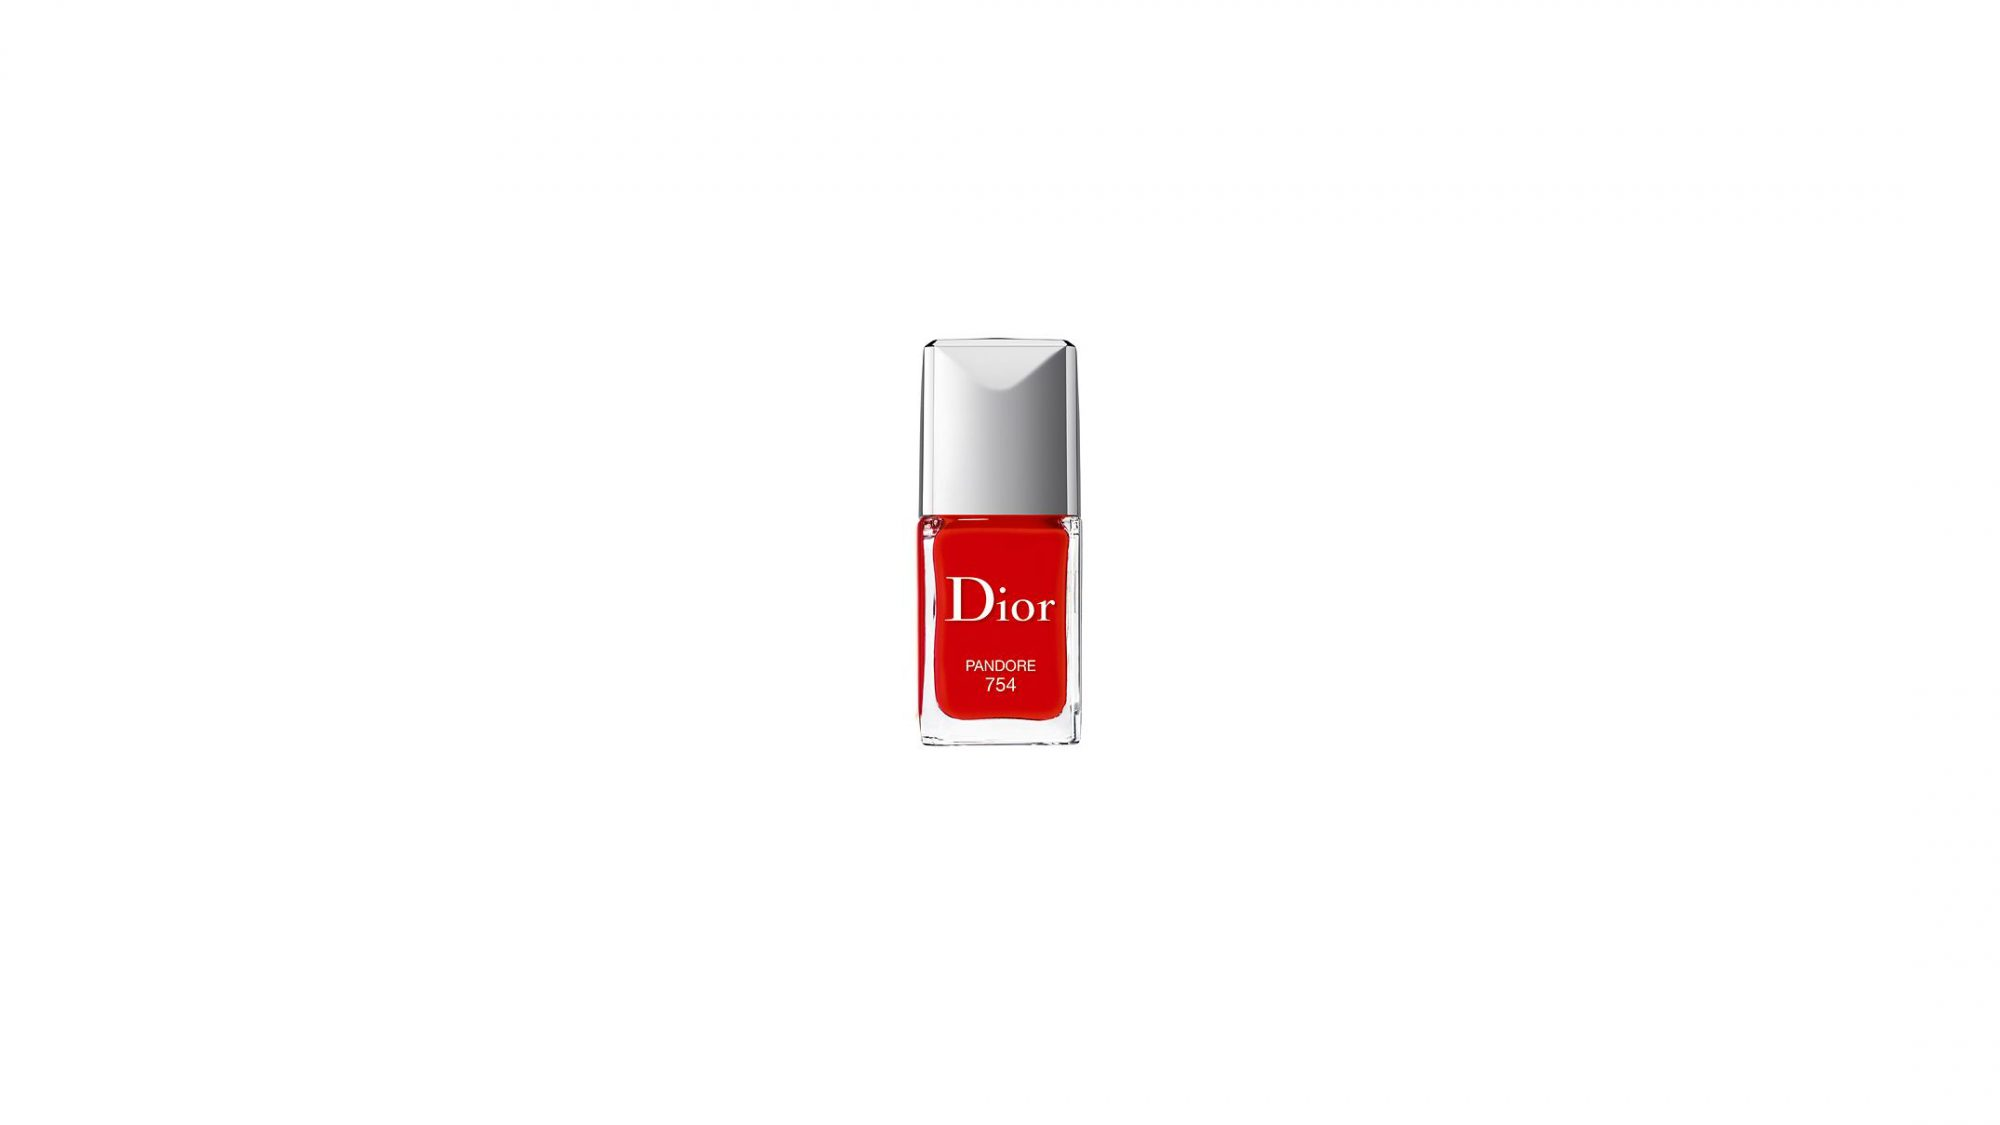 Dior Vernis Gel Shine and Long Wear Nail Lacquer